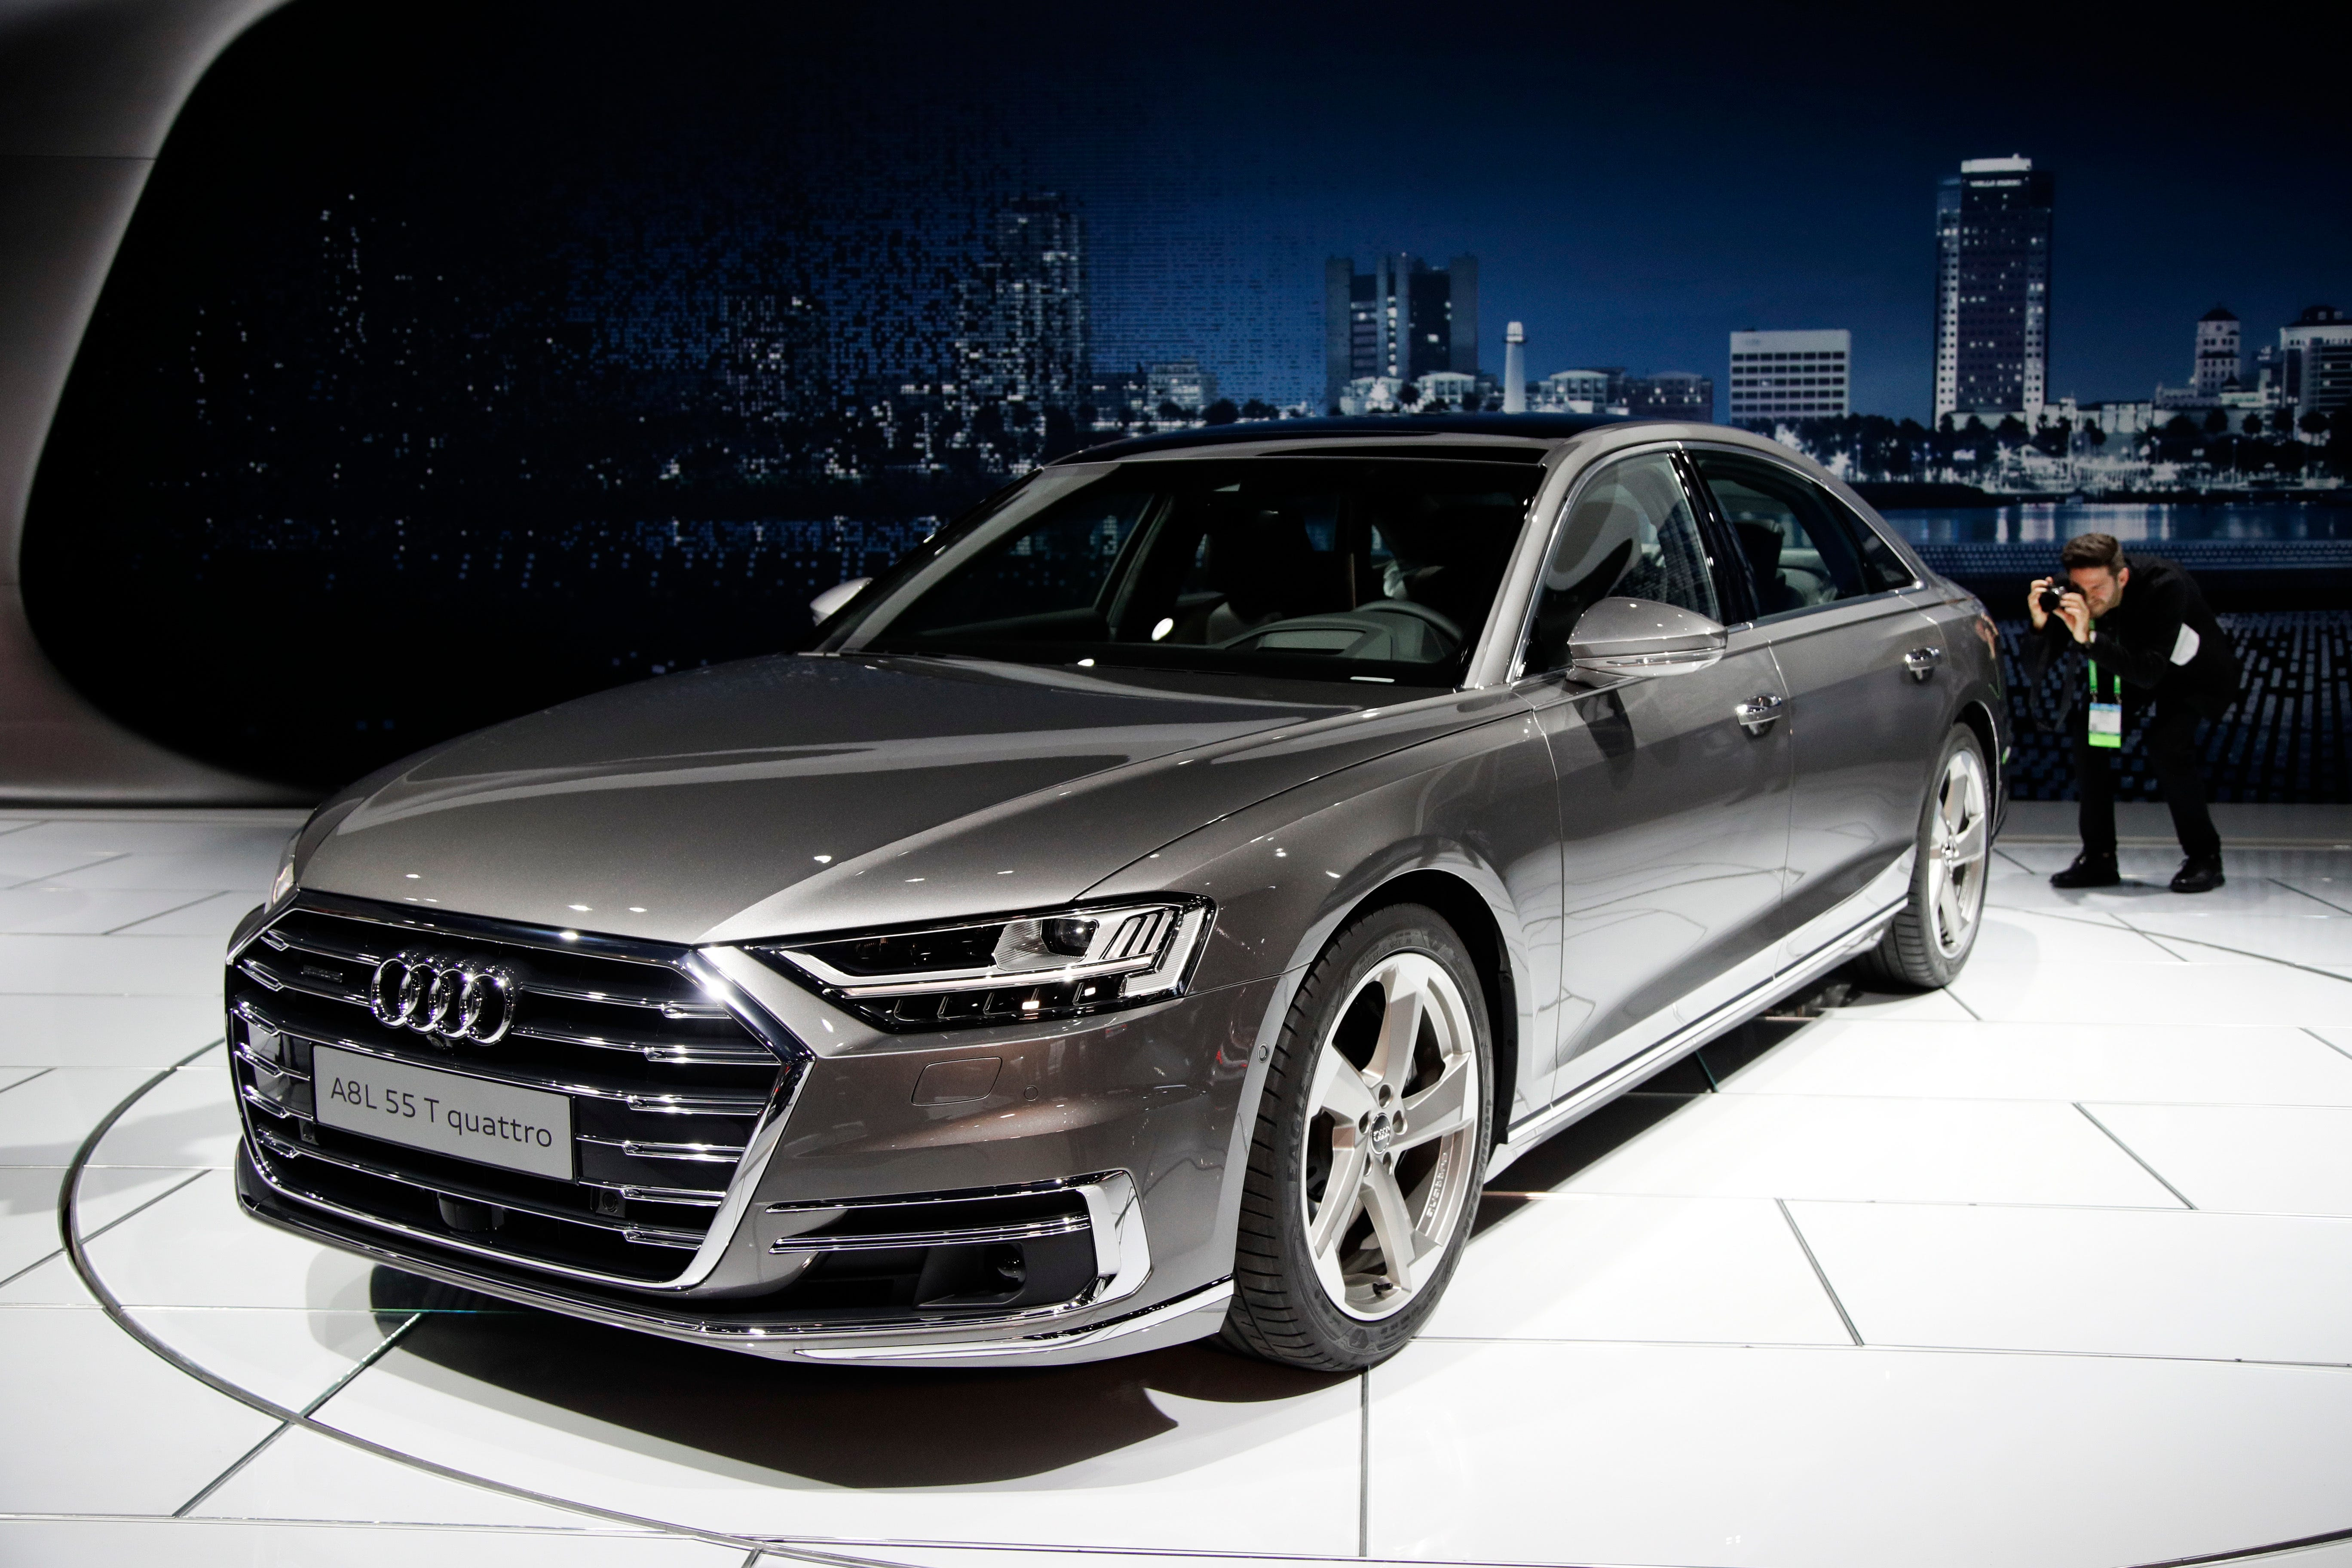 2019 Audi A8: All new, it packs more toys into its